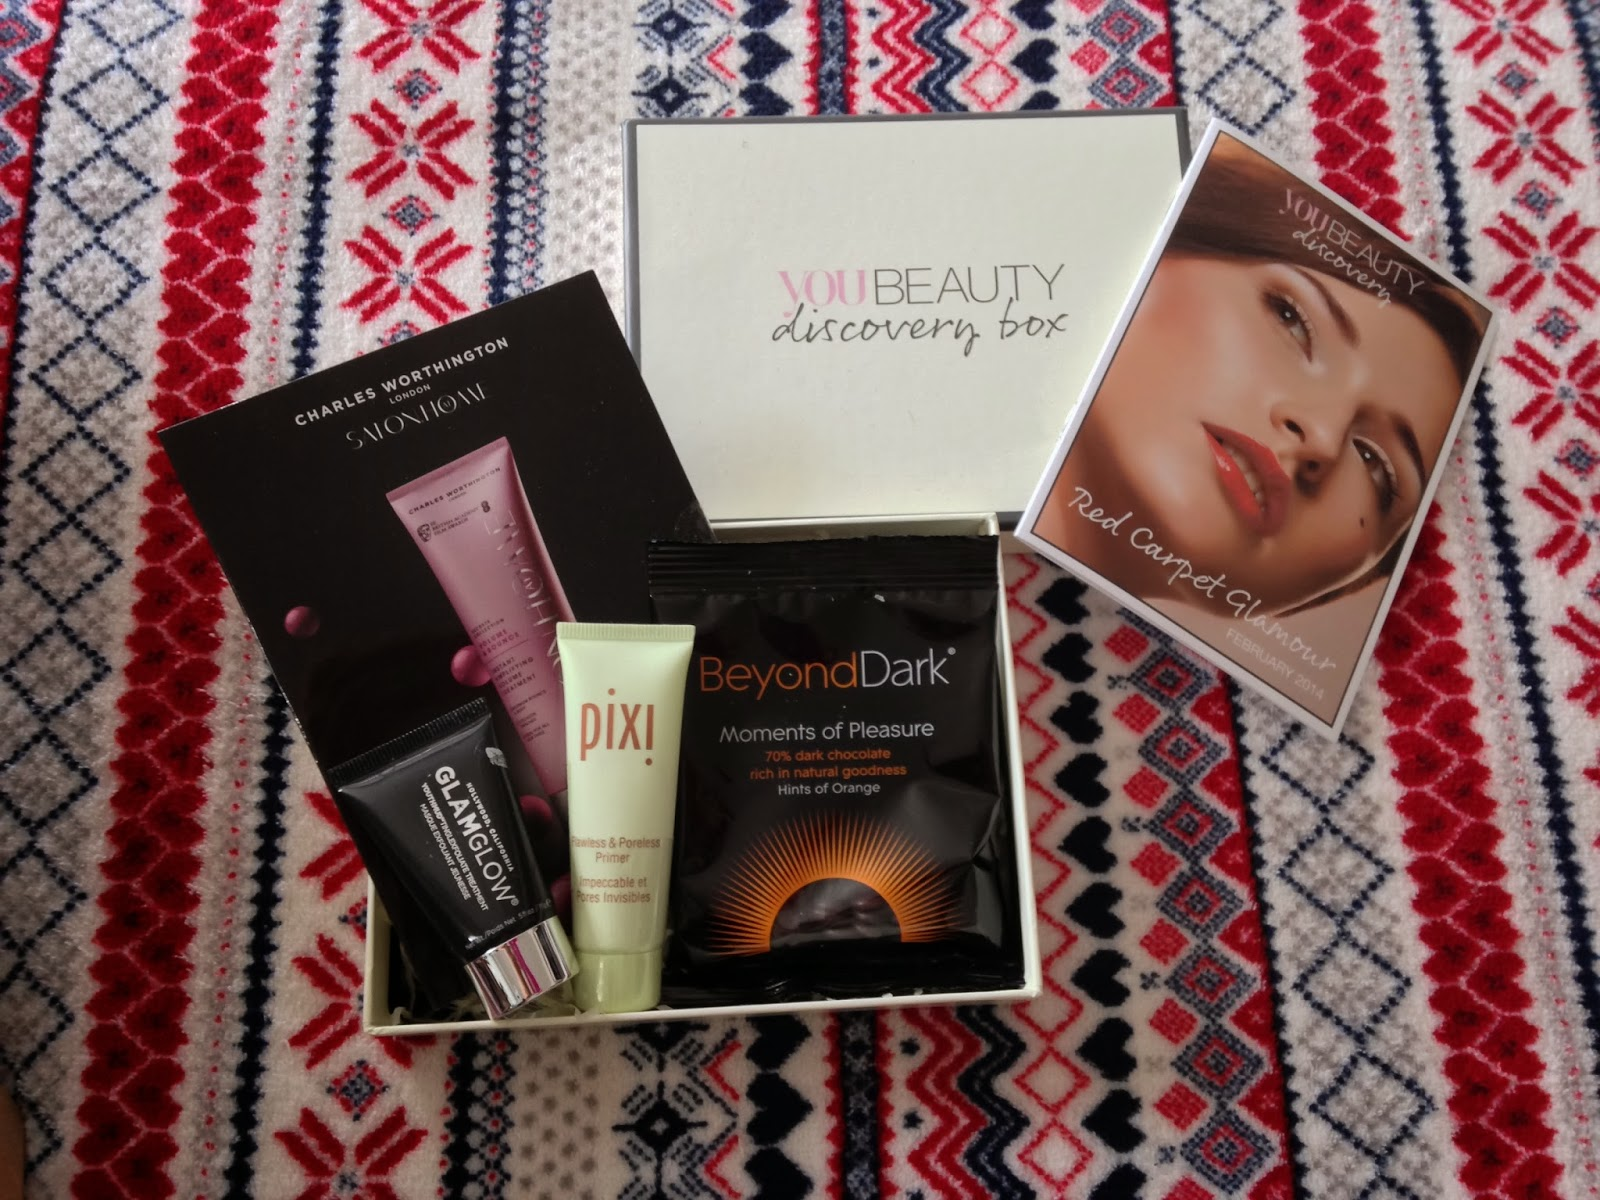 You Beauty discovery box contents February 2014